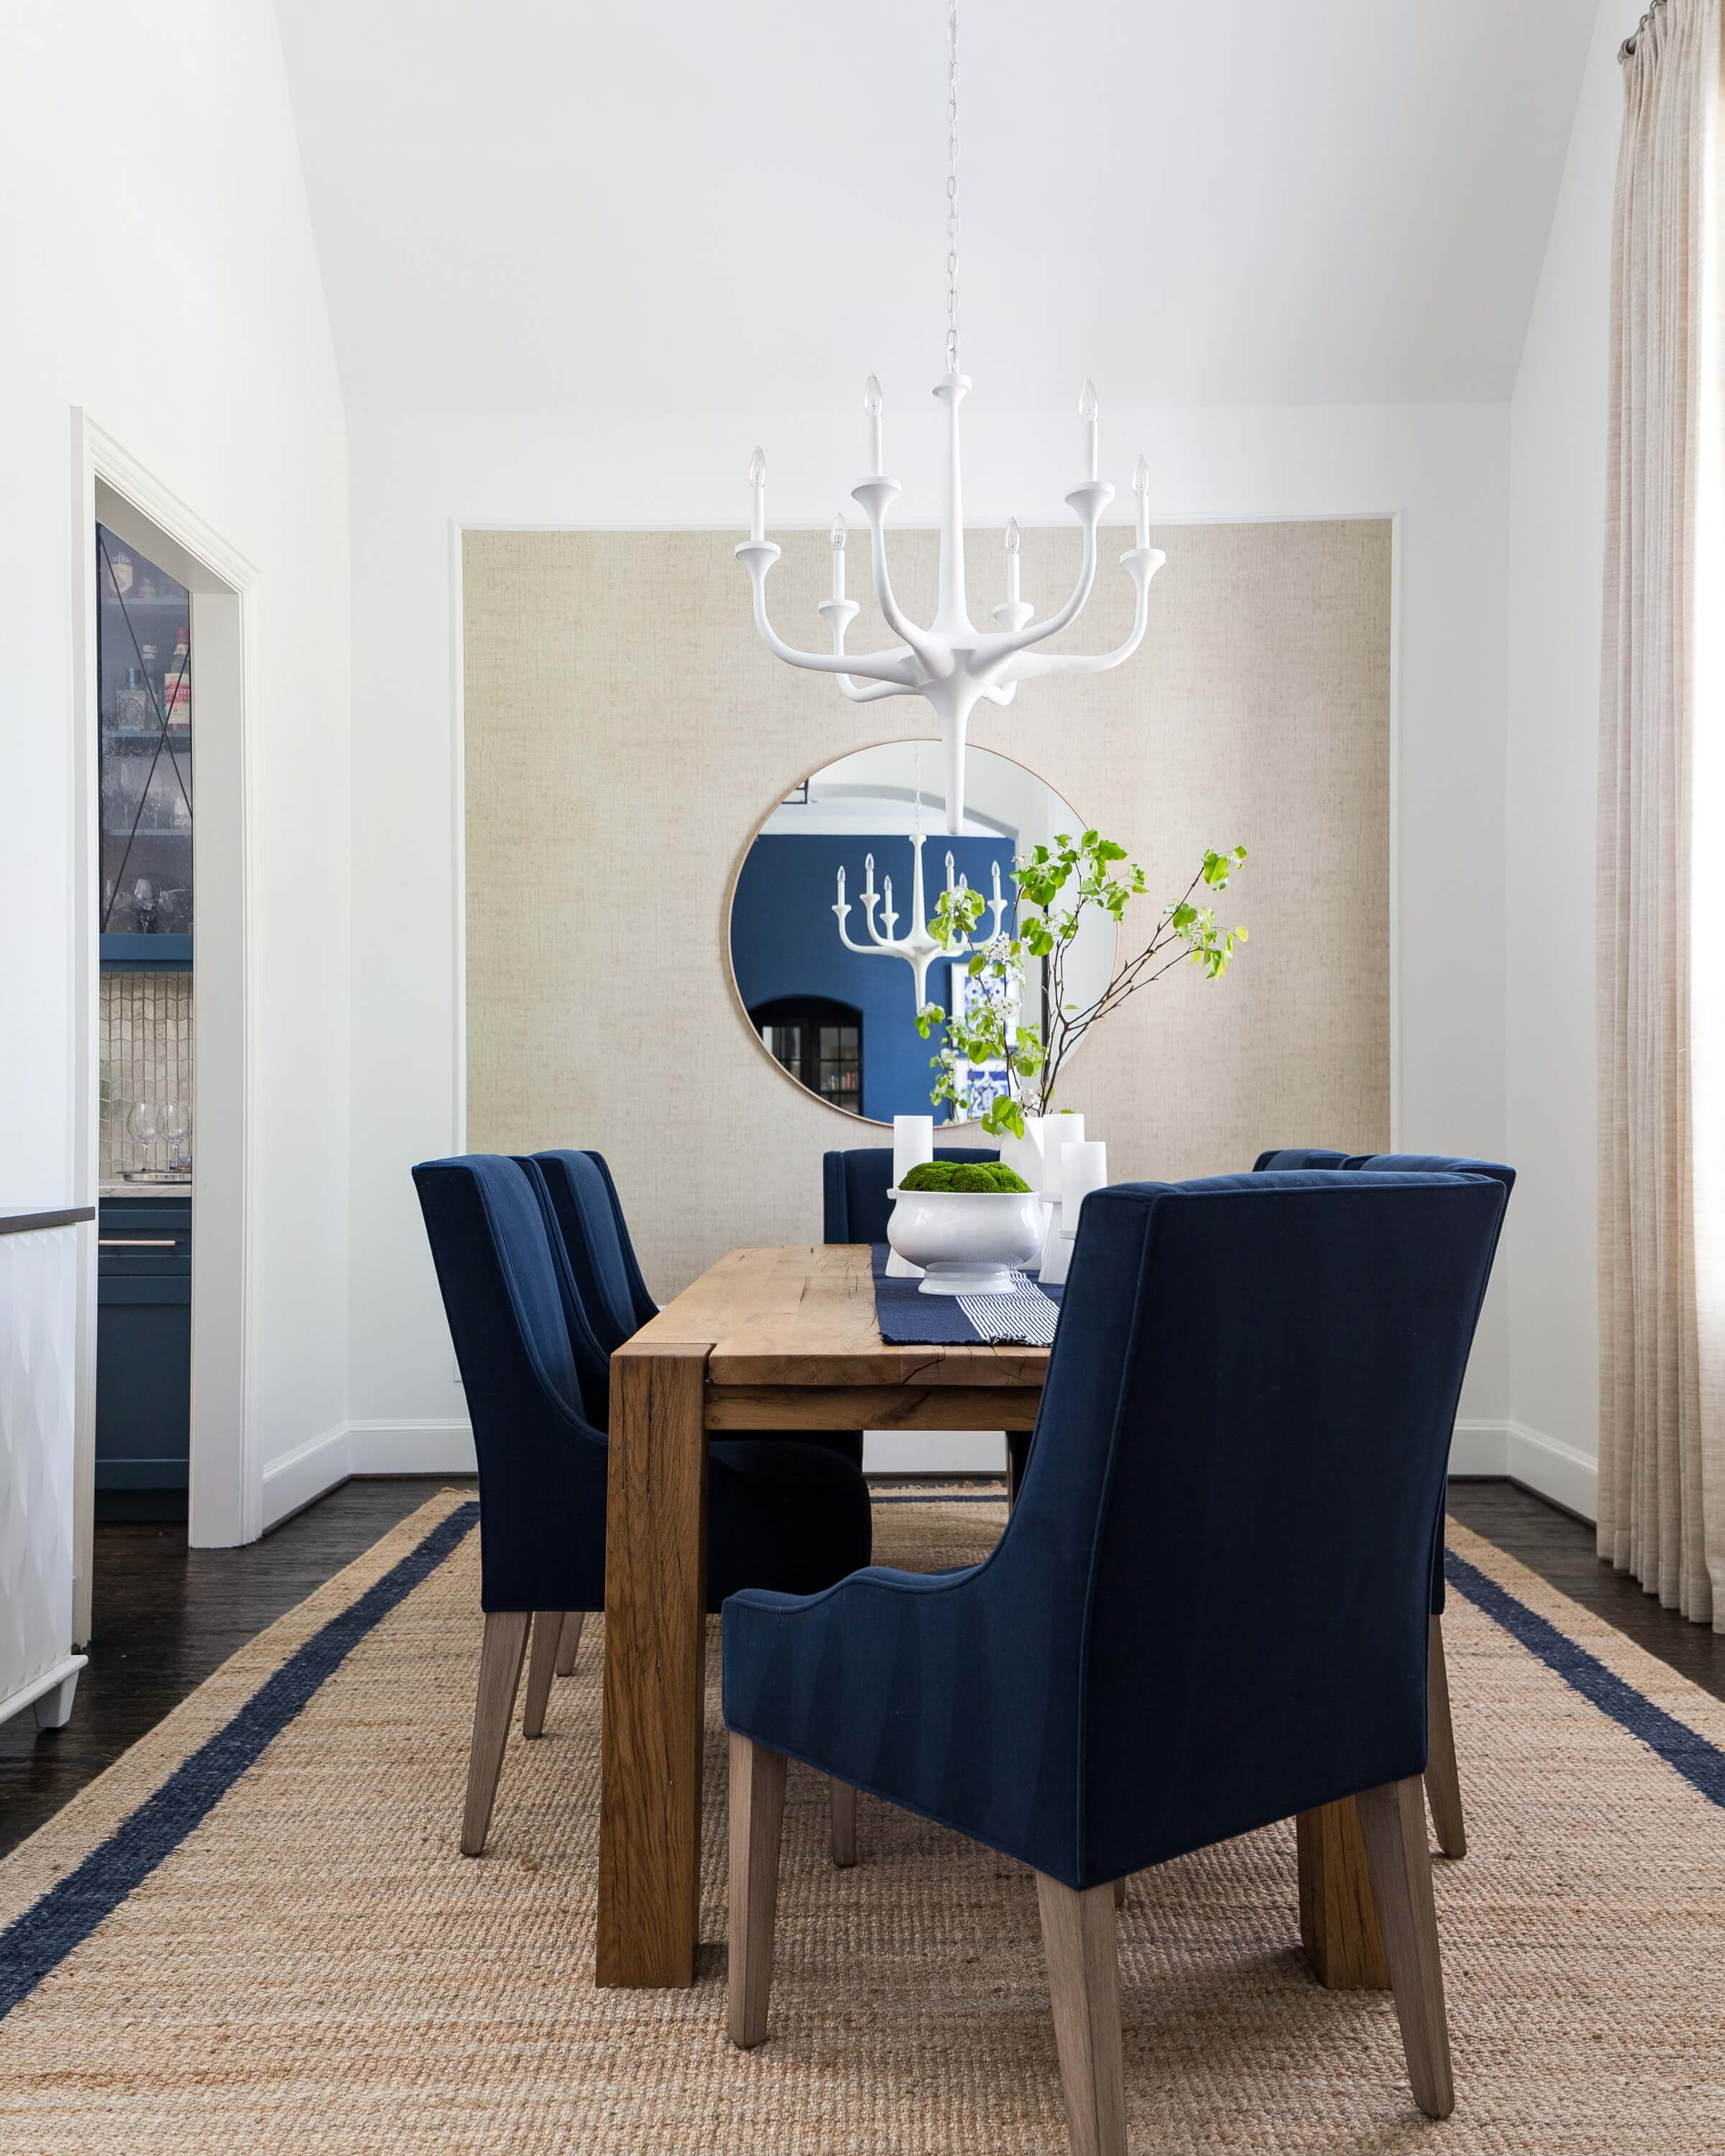 PROJECT REVEAL - A Striking Dining Room And Music Room Made Over With High Contrast | Designer: Carla Aston, Photographer: Colleen Scott | #diningroom #navyandwhite